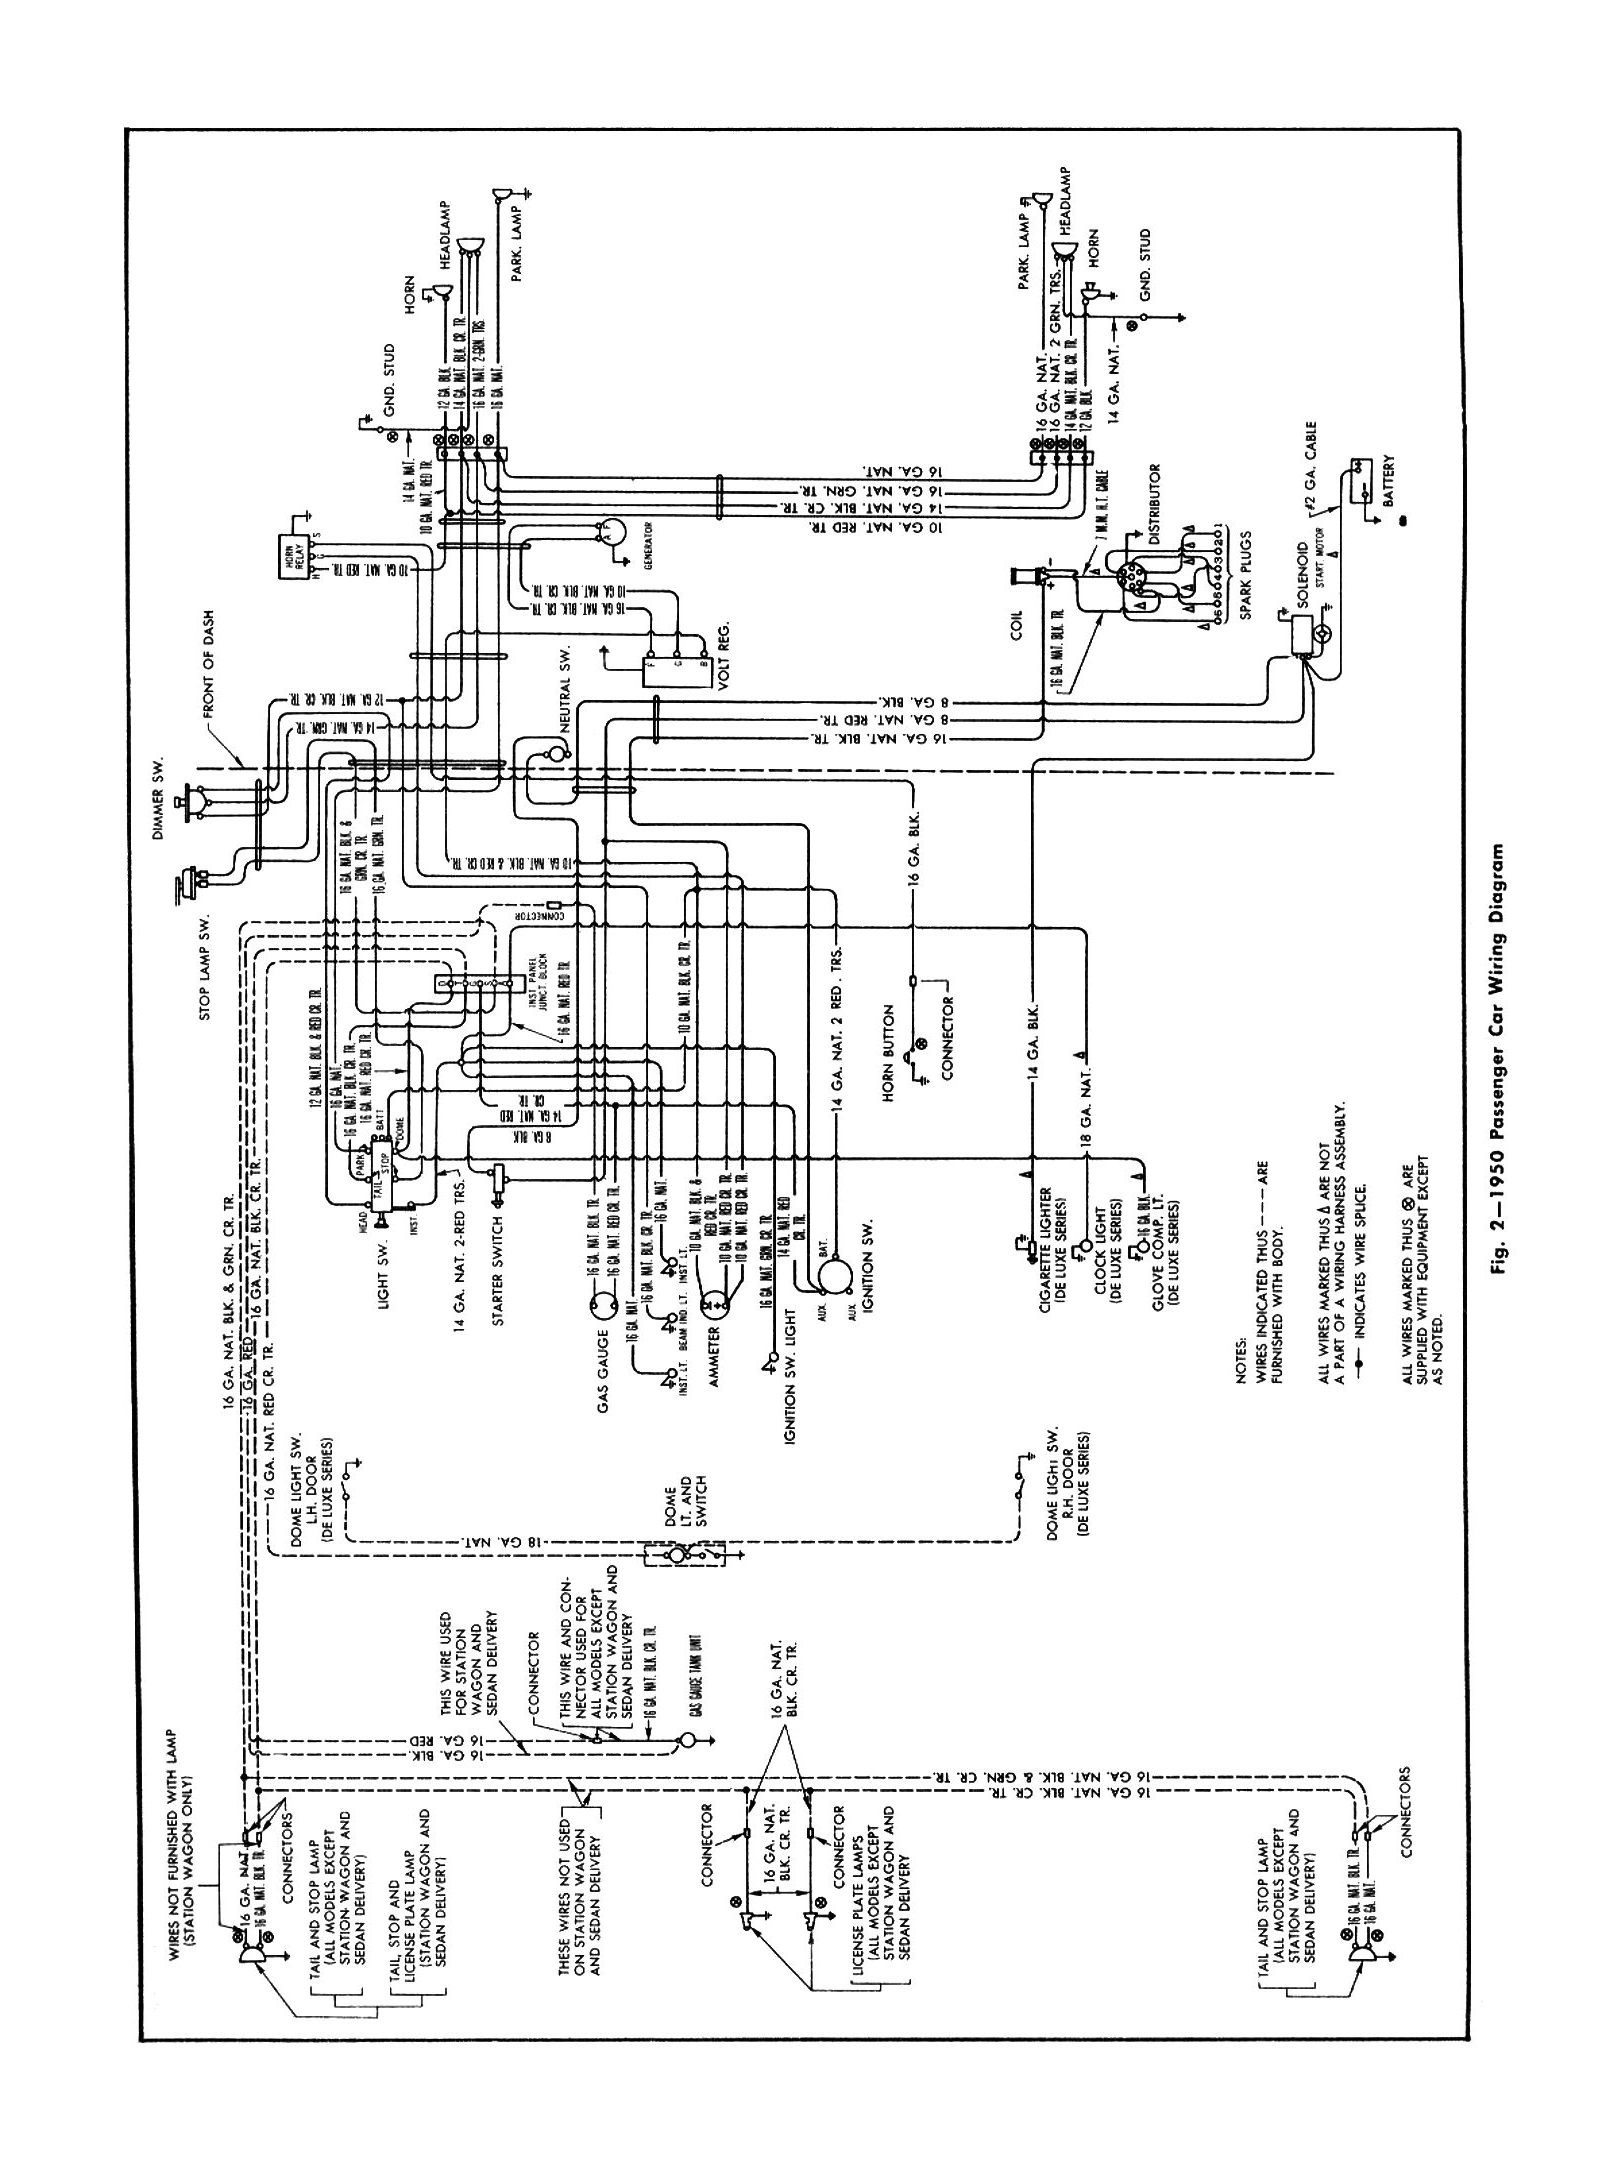 Chevy Wiring Diagrams - Evinrude Wiring Diagram Outboards